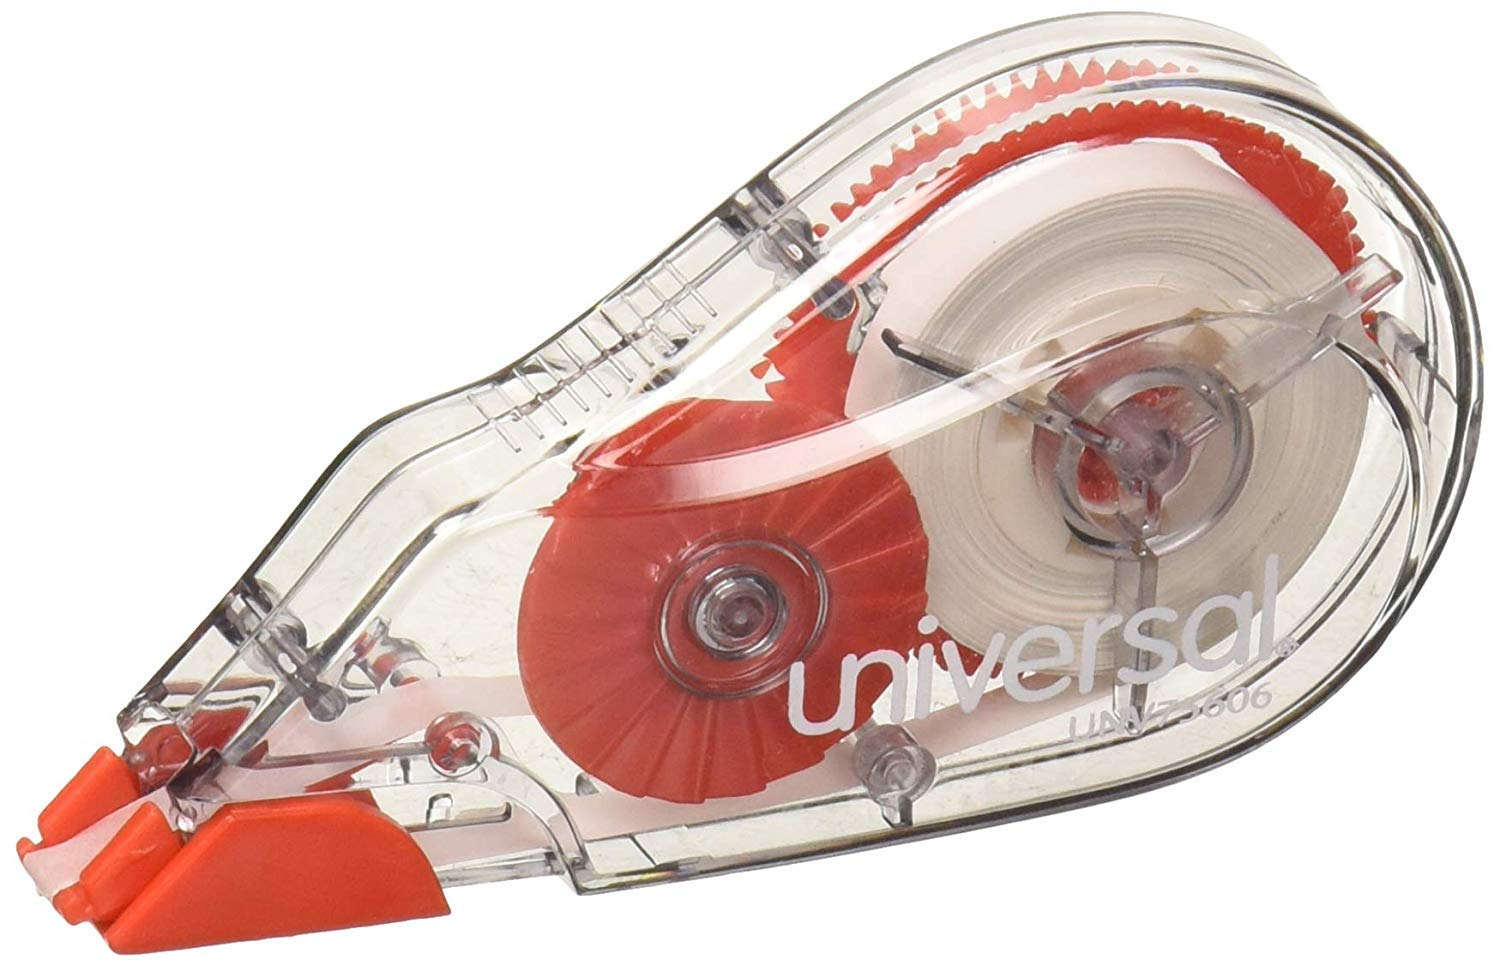 UNV75606 - Universal Correction Tape with Two-Way Dispenser, Non-Refillable, 1/5'' x 315'', 6/Box, Case of 6 (36 Total)